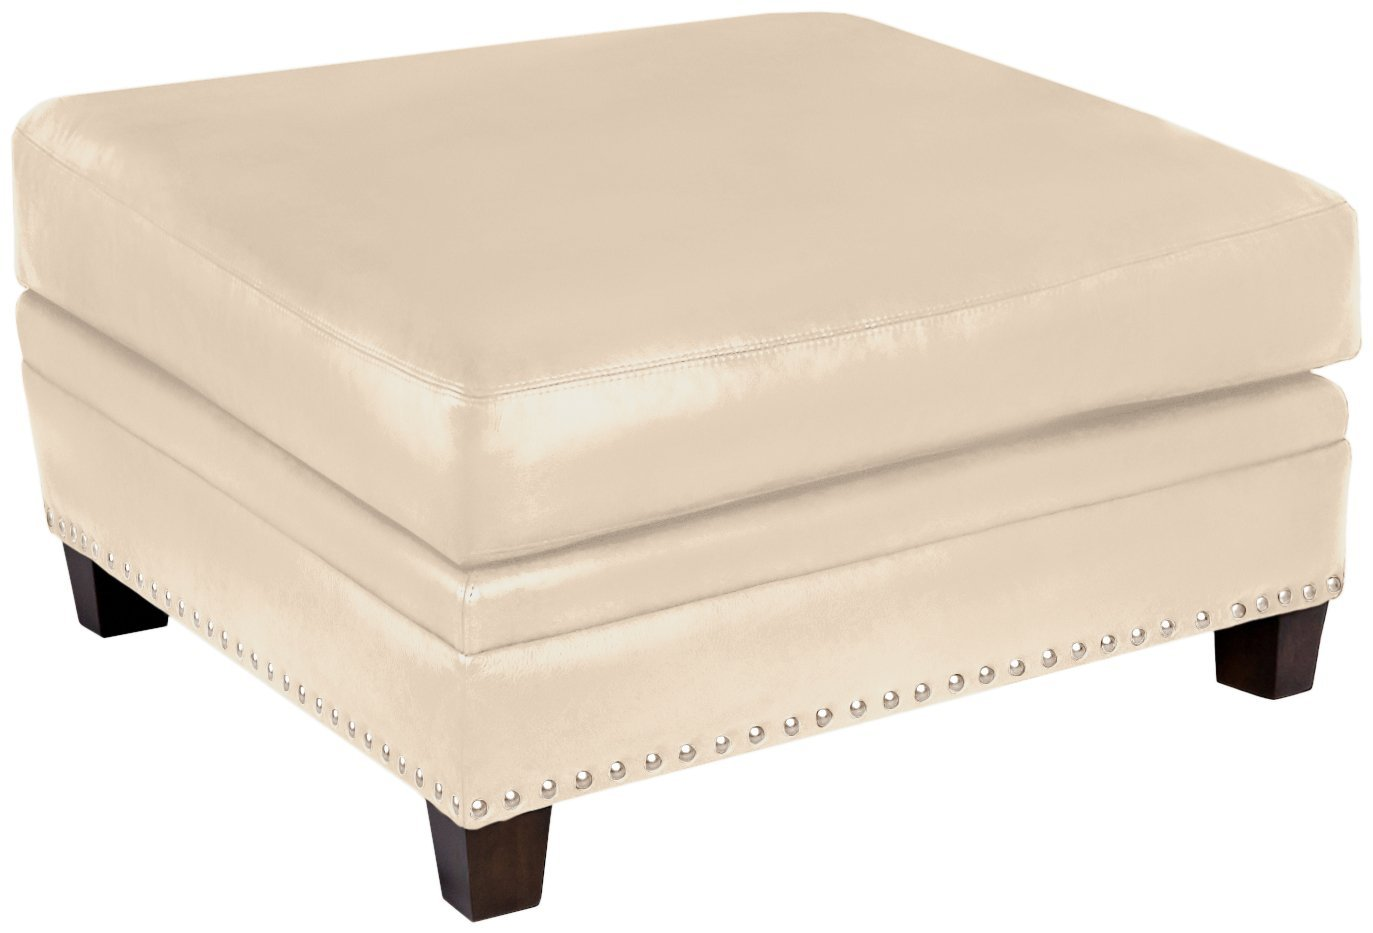 Omnia Leather Glendora Cocktail Ottoman in Leather, with Nail Head, Softstations White Winter